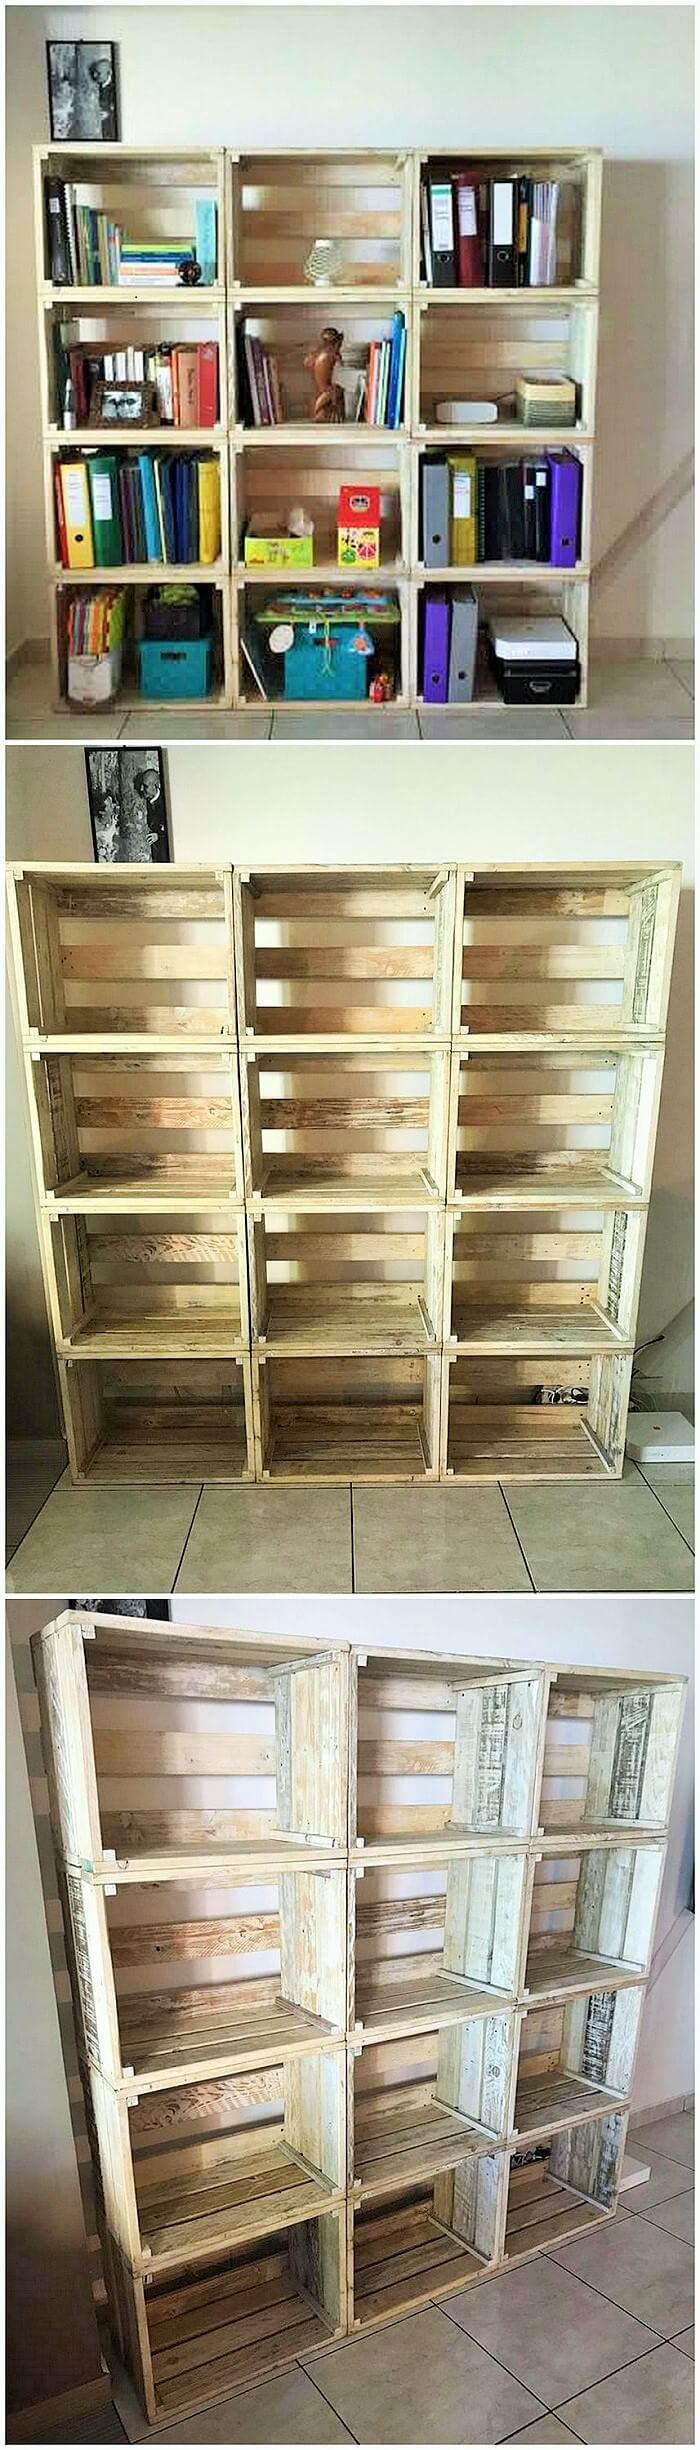 DIY Wooden Pallets Ideas (2)